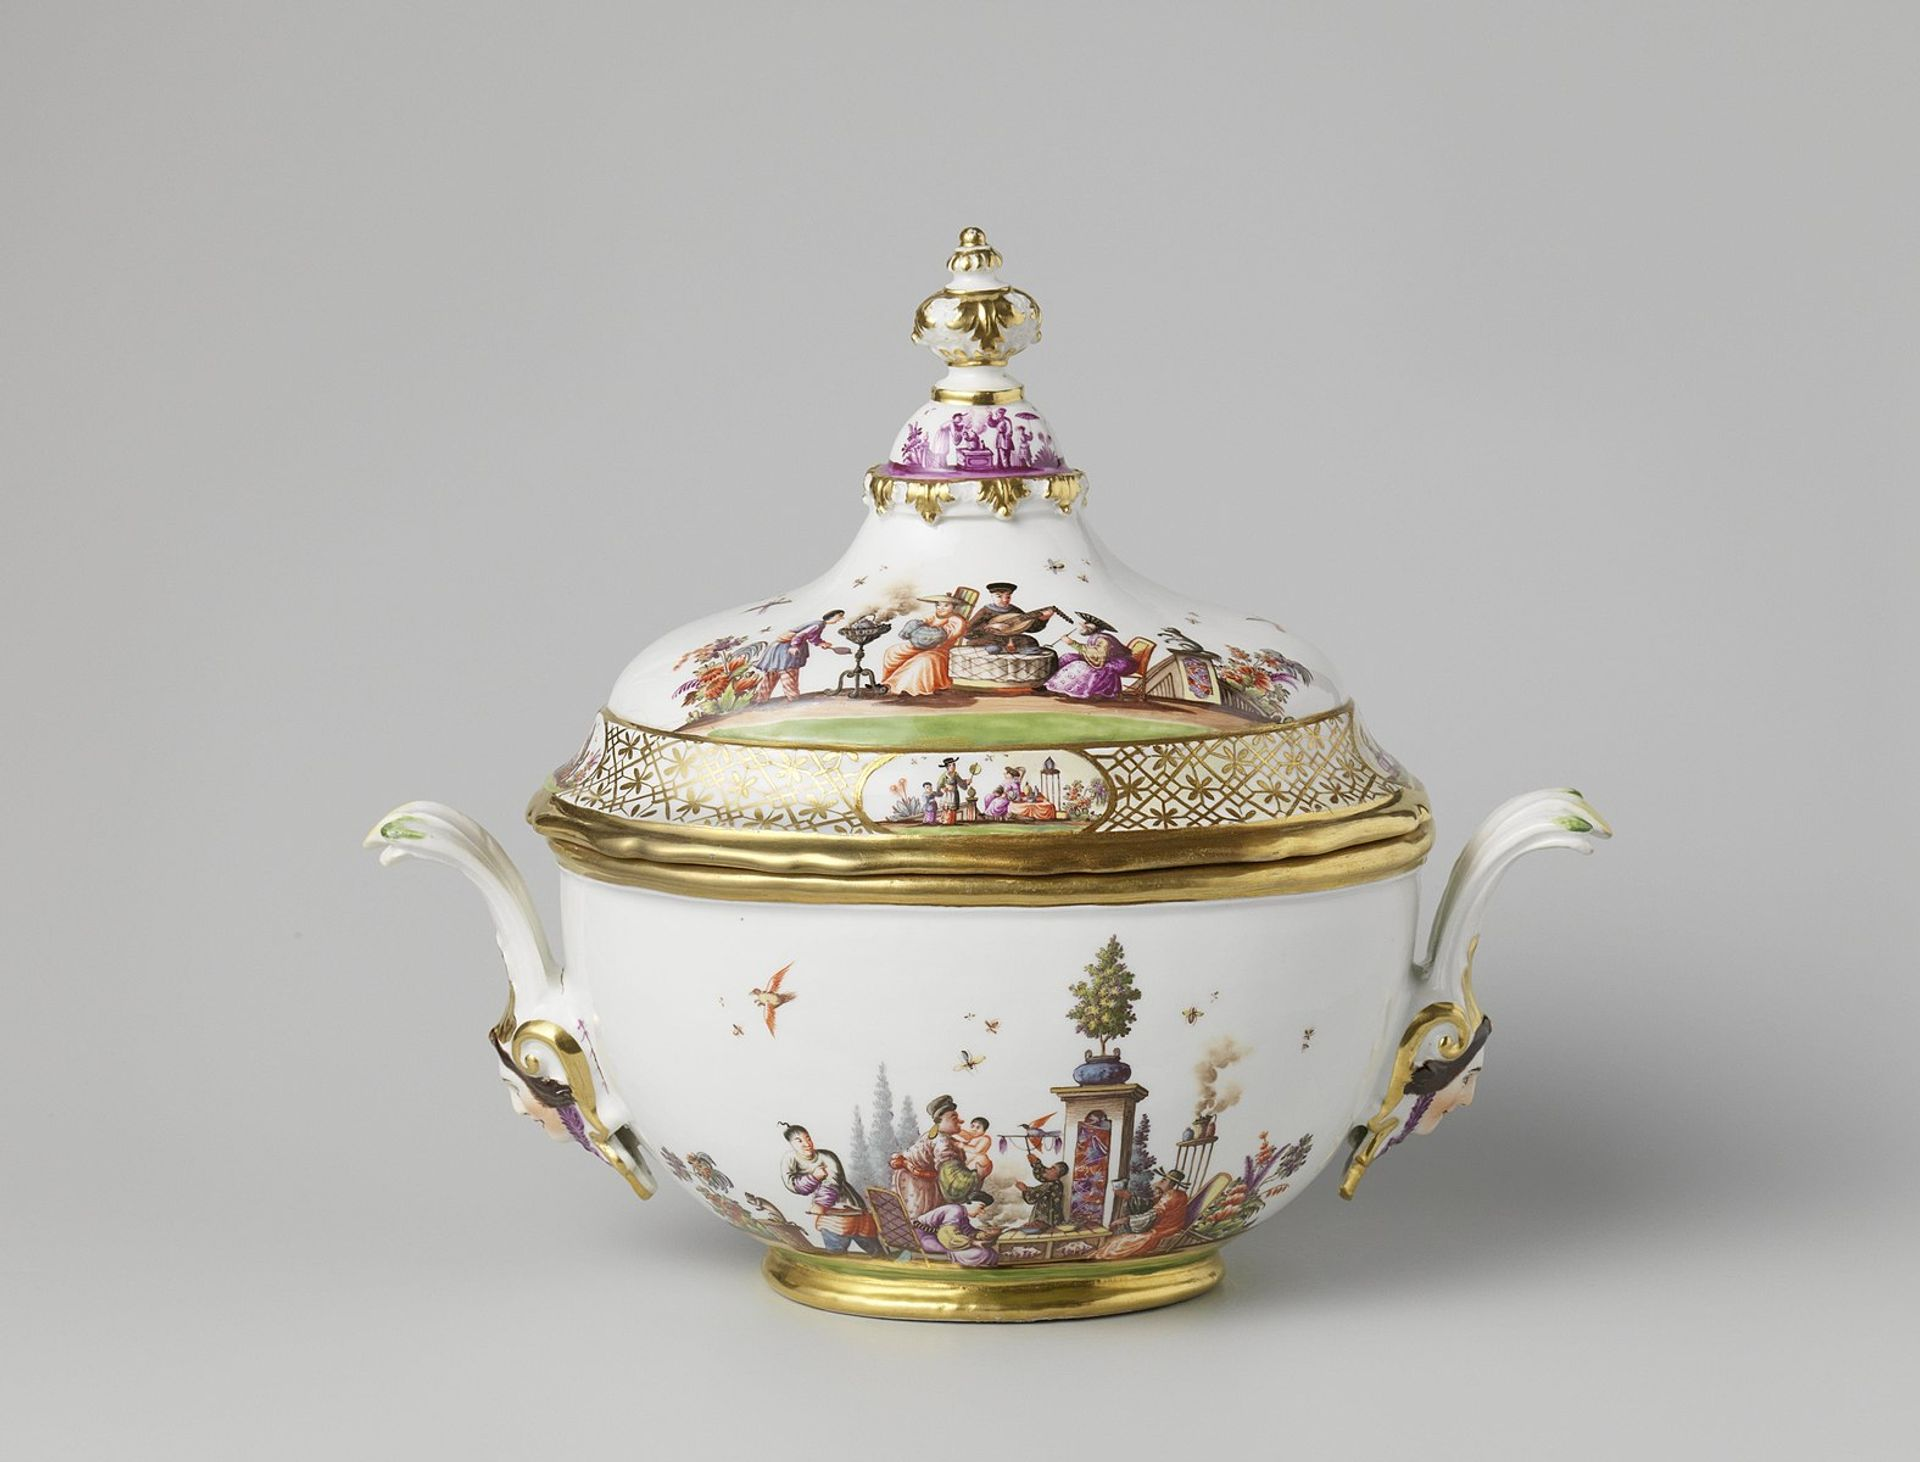 Around 100 pieces of Meissen porcelain will be auctioned by Sotheby's Courtesy of the Dutch Restitution Committee